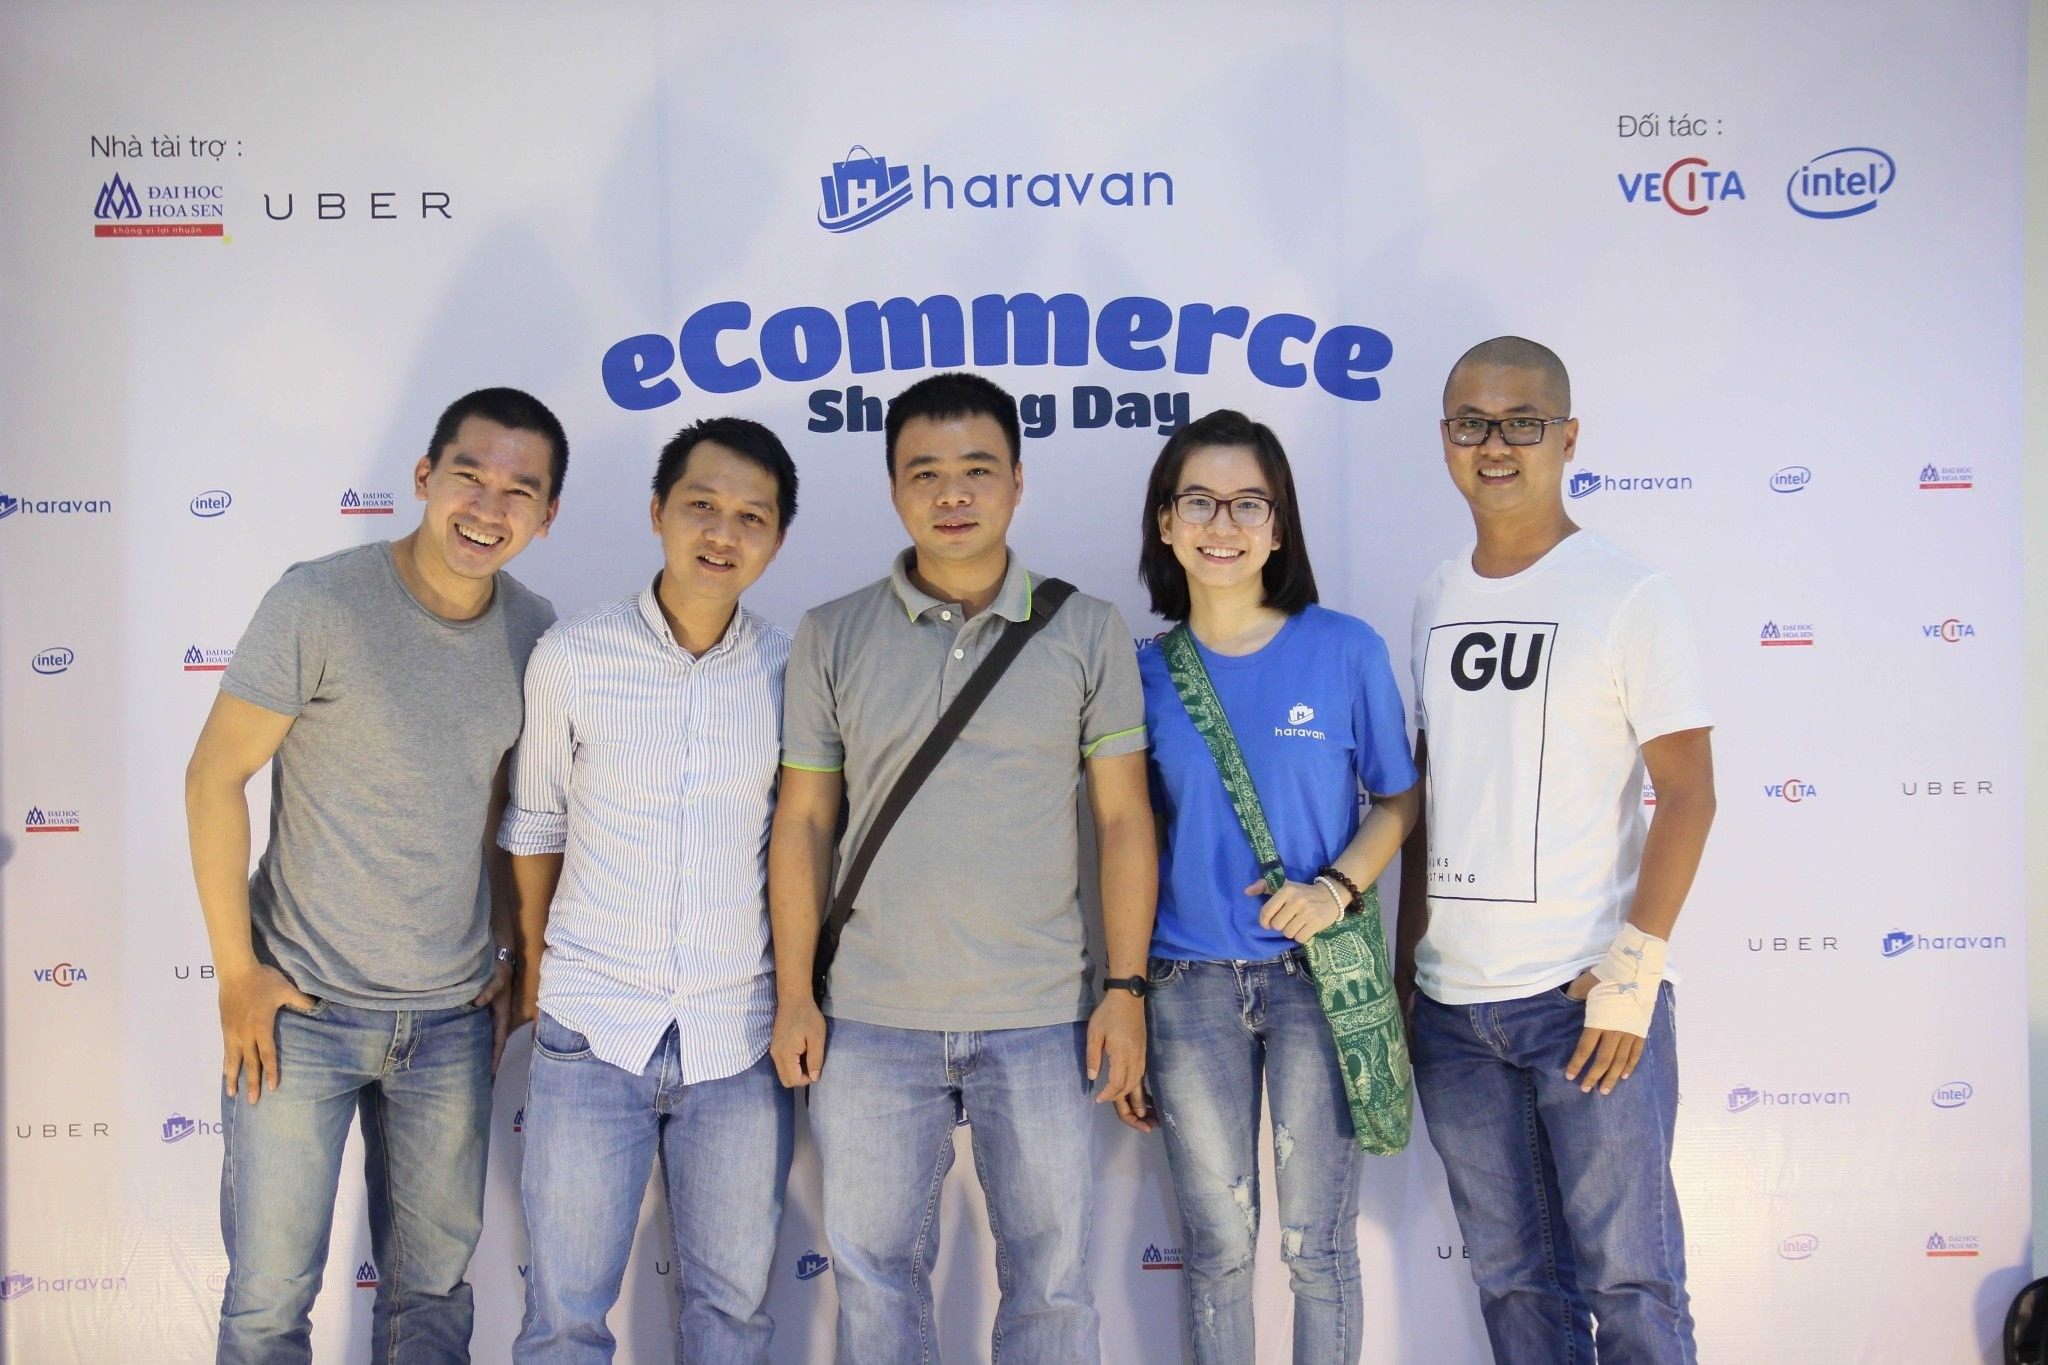 Ecommerce Sharing Day 2 (26/7/2015)